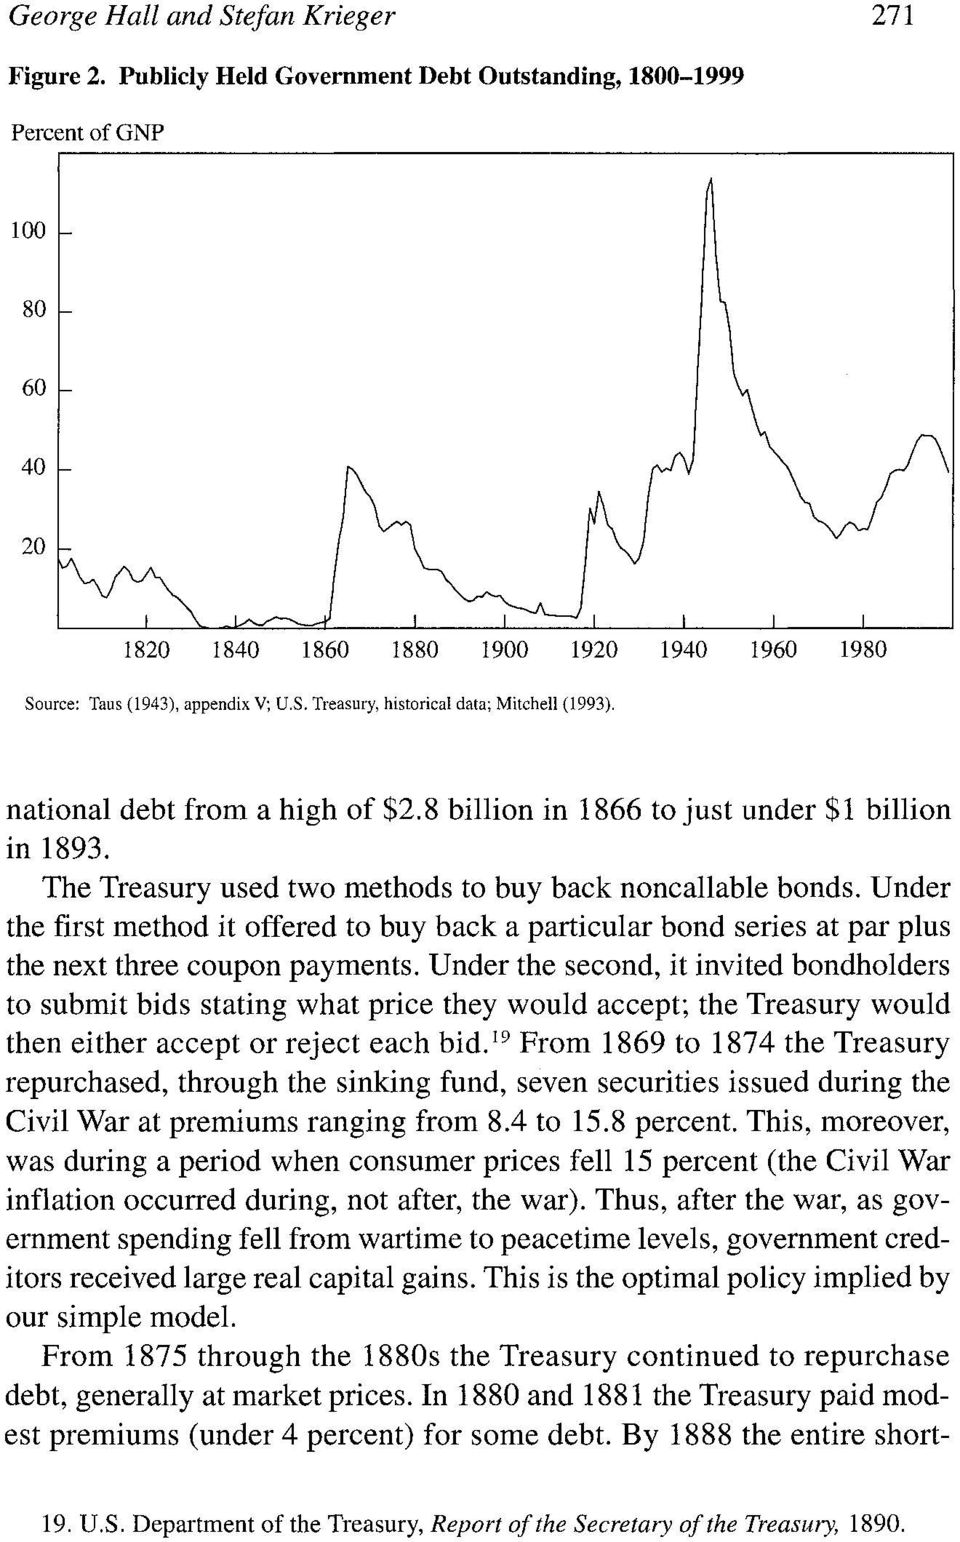 national debt from a high of $2.8 billion in 1866 to just under $1 billion in 1893. The Treasury used two methods to buy back noncallable bonds.